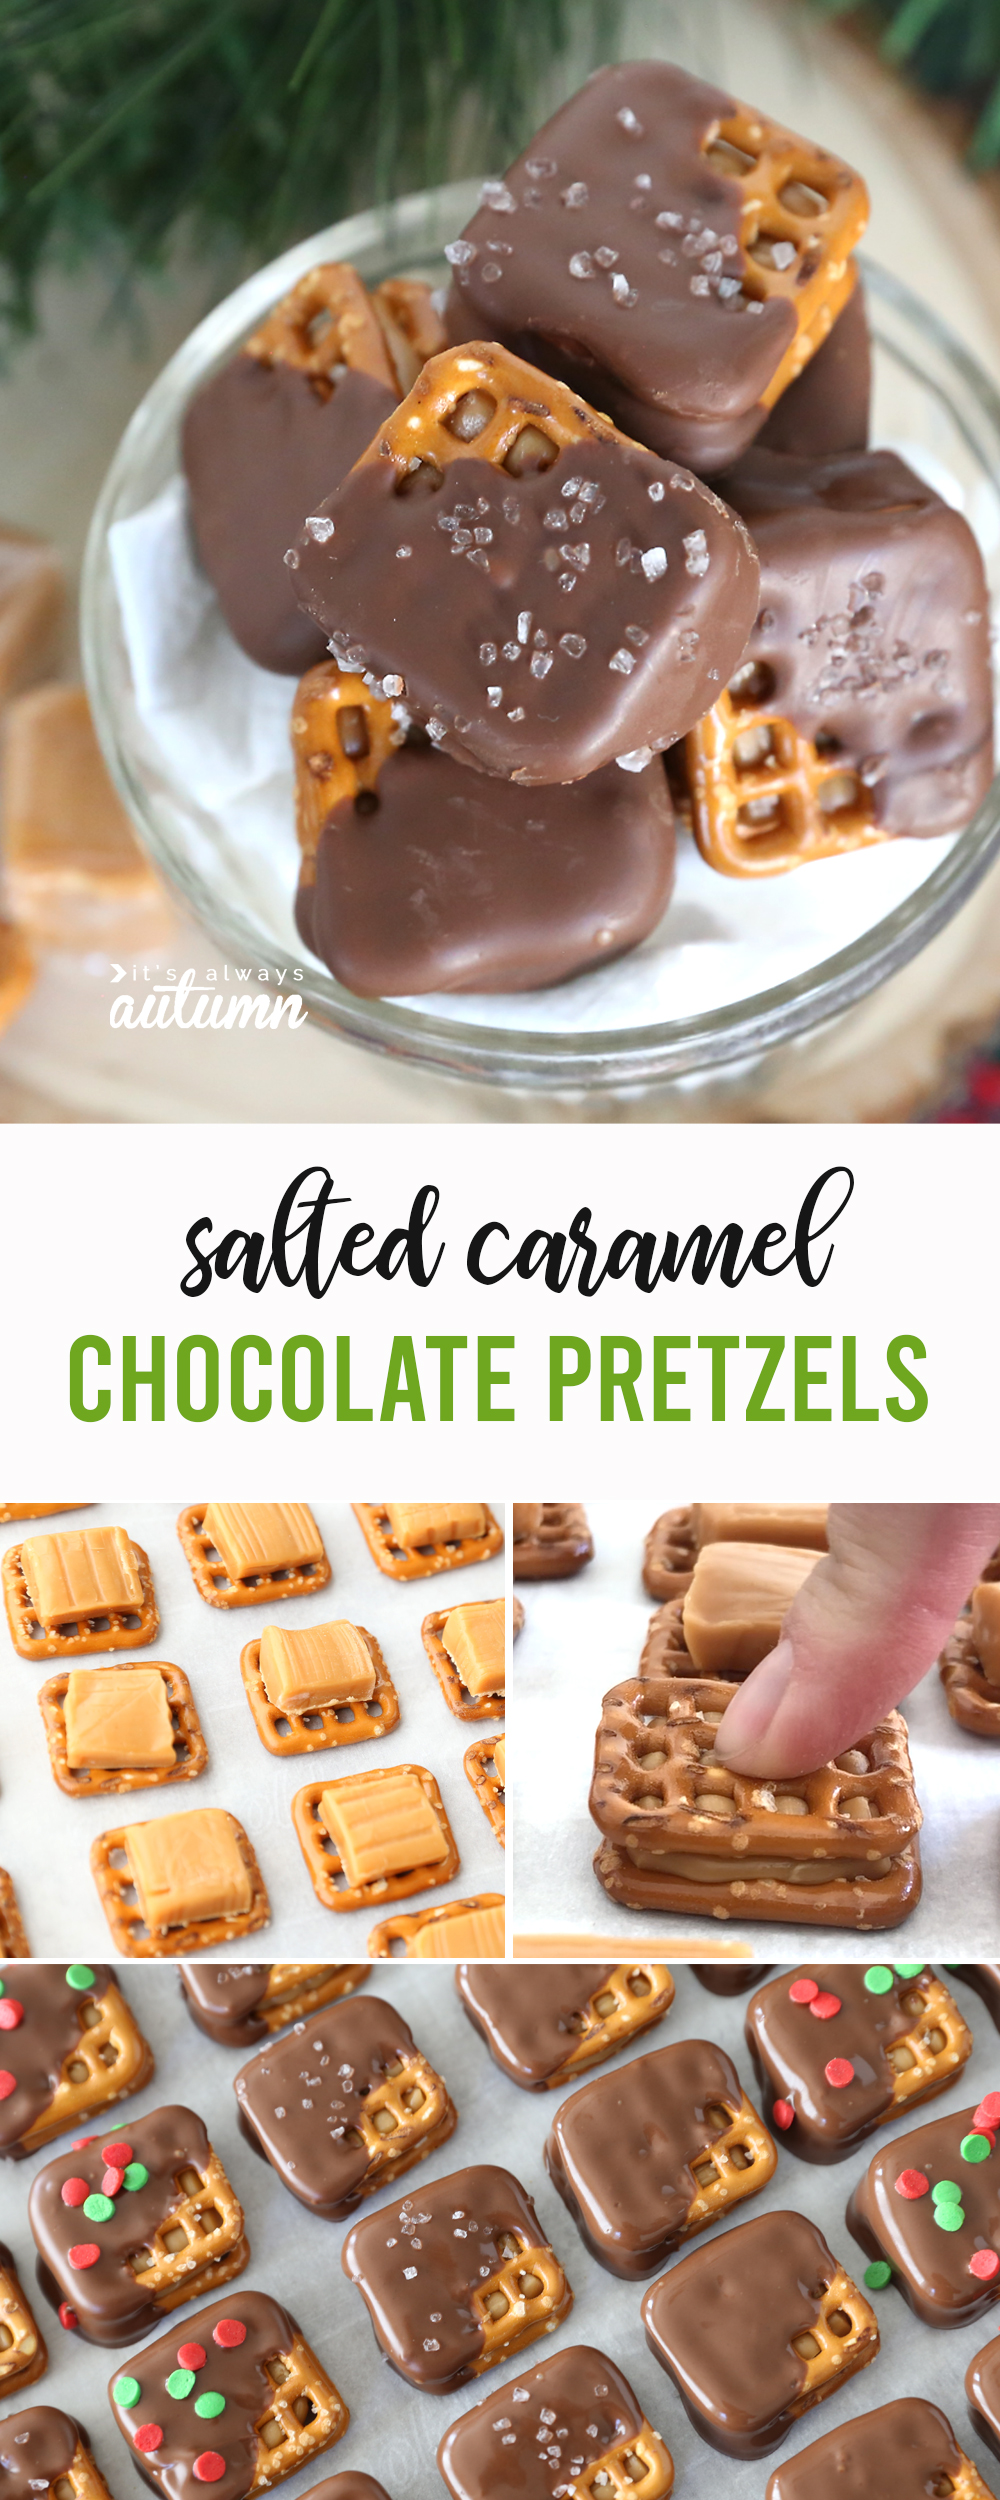 These salted caramel chocolate pretzels are AMAZING! Perfect treat for homemade gifts or Christmas parties.